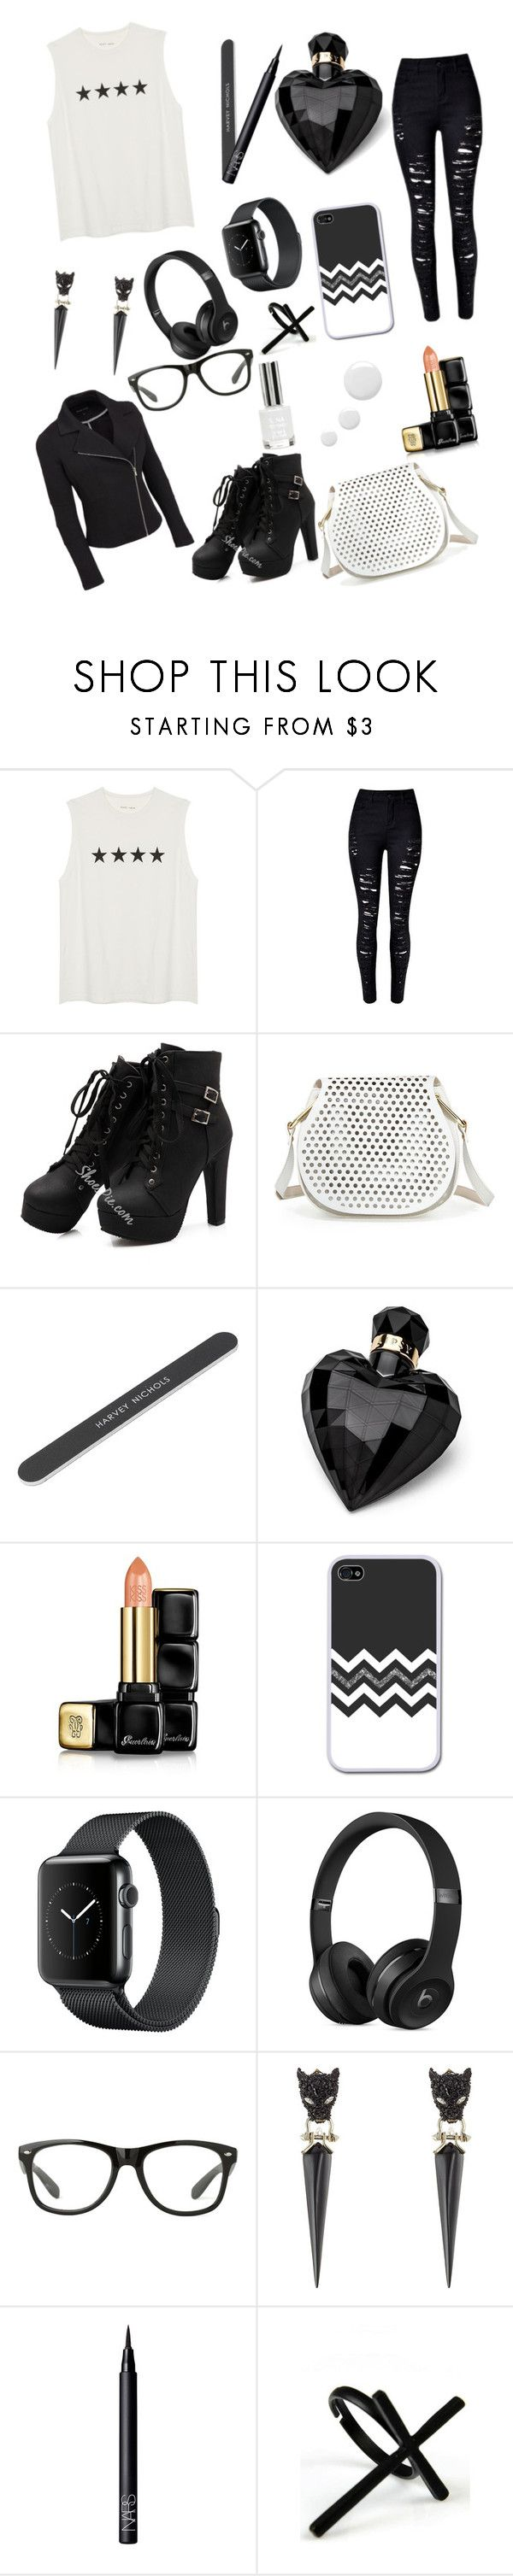 """Black and White"" by kaykay42005 ❤ liked on Polyvore featuring Cynthia Rowley, Lipsy, Guerlain, Alexis Bittar, NARS Cosmetics, Emi Jewellery and plus size clothing"